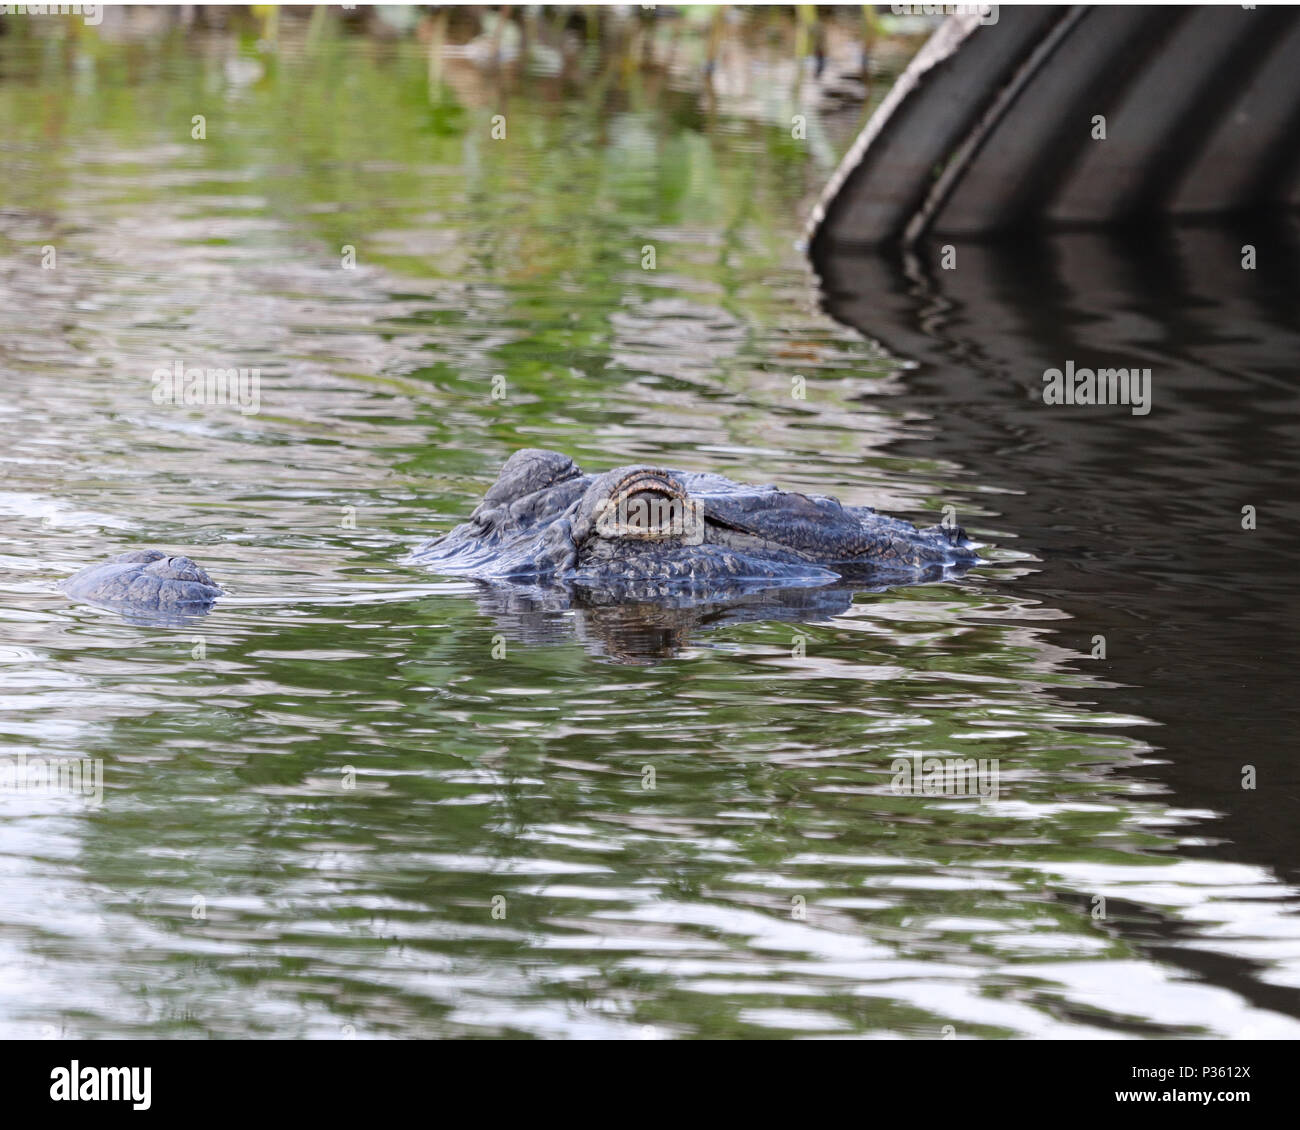 Alligator emerging from a drainpipe on a Florida waterway - Stock Image